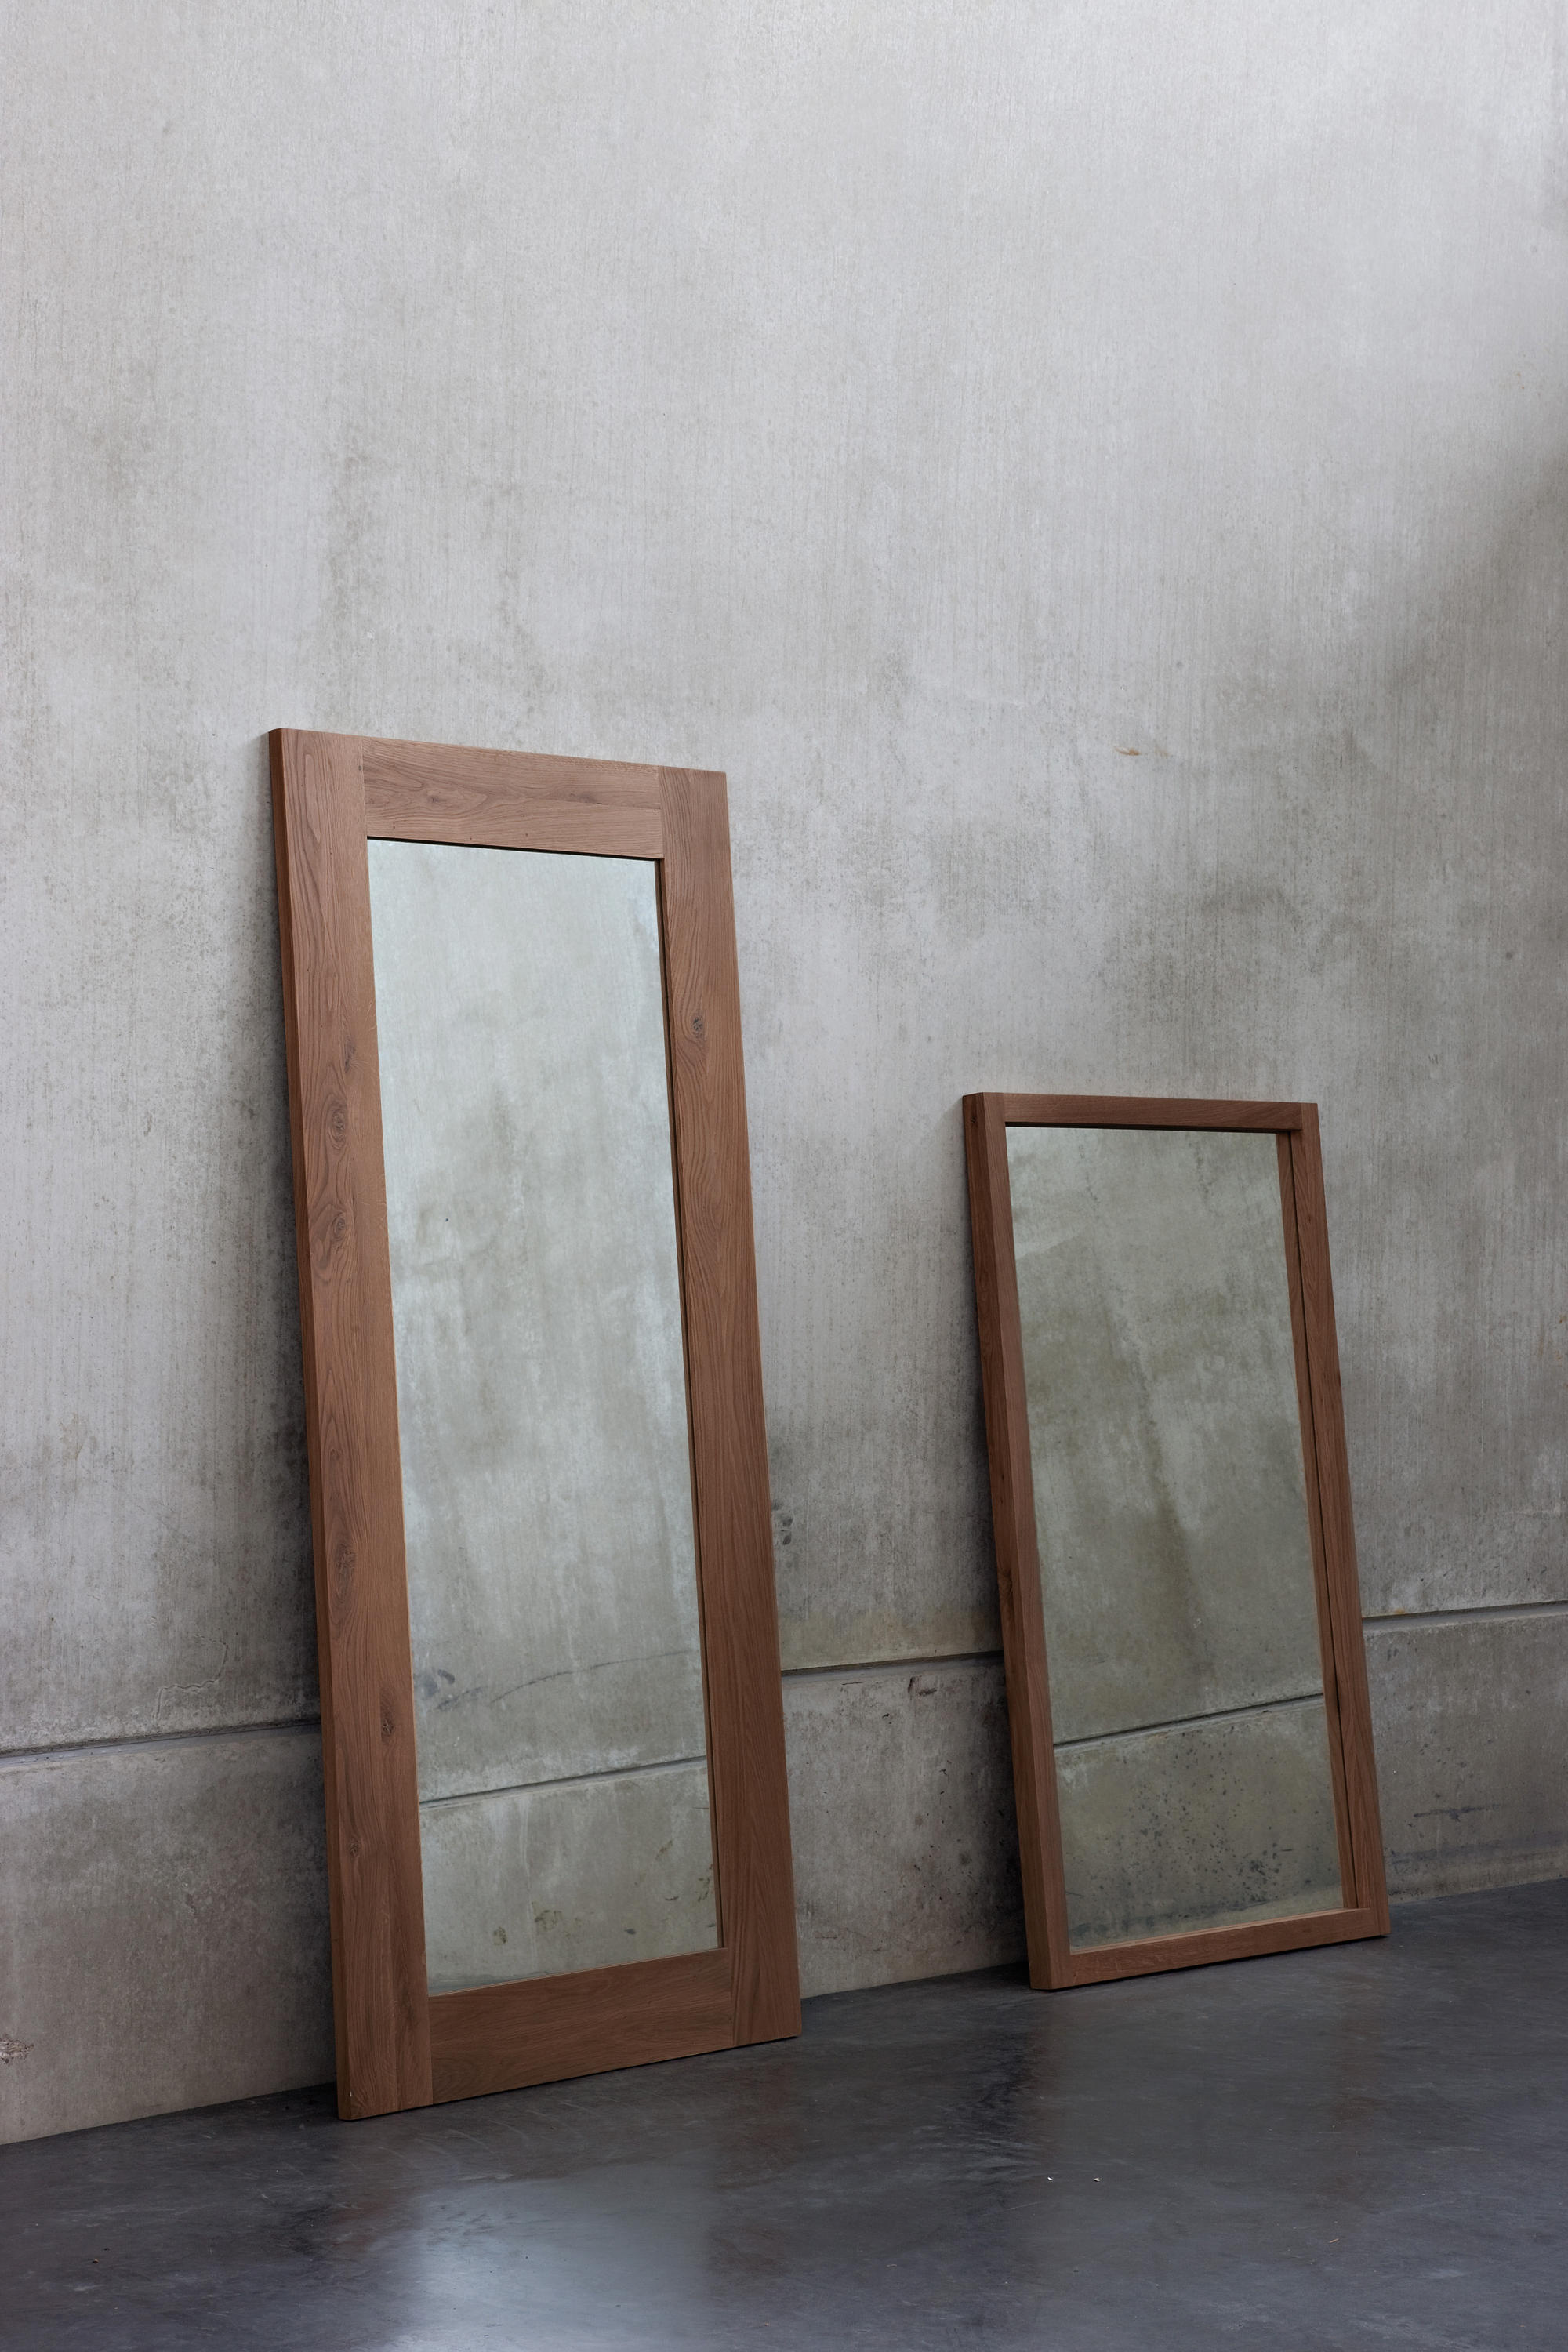 Teak Mirror Mirrors From Ethnicraft Architonic